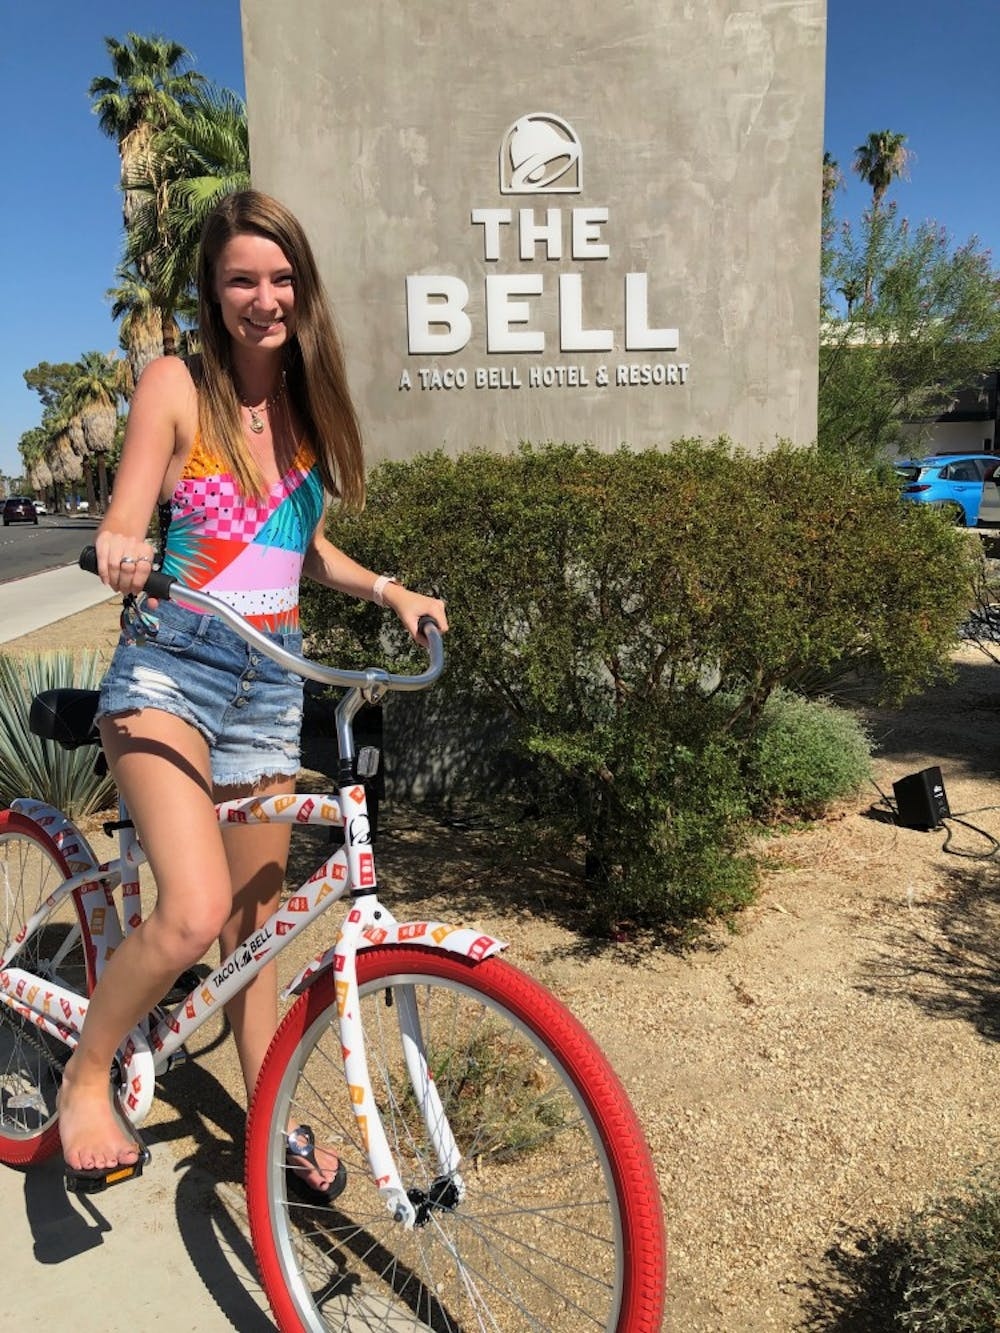 Senior visits, stays in Taco Bell Hotel